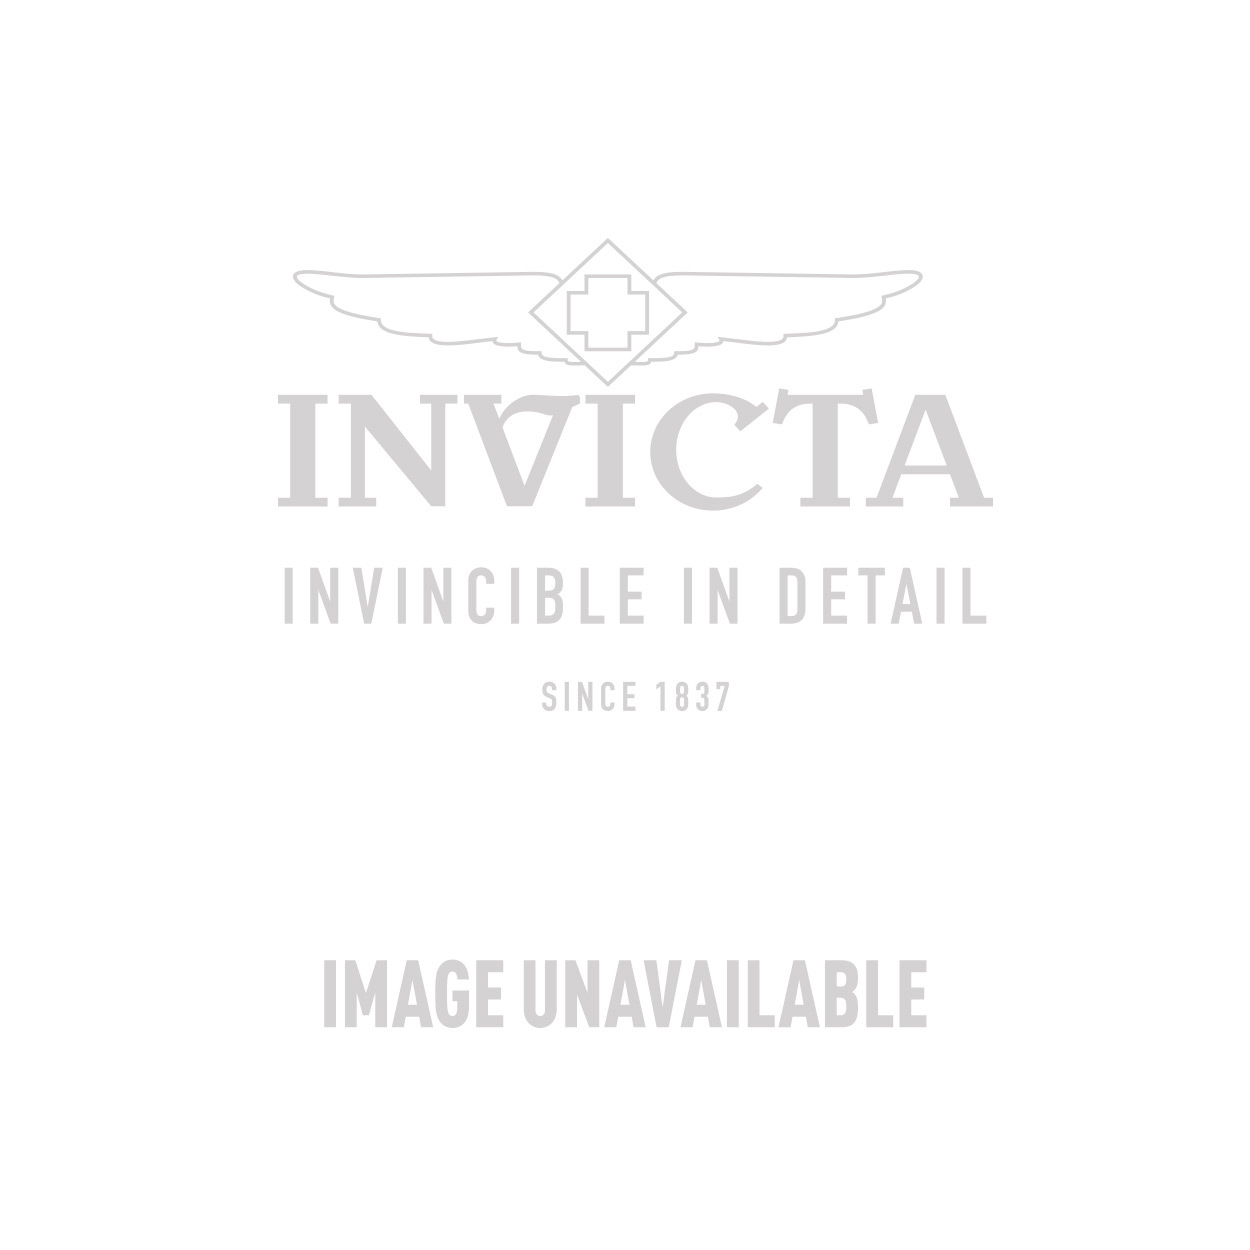 Invicta Specialty Quartz Watch - Gold case with Gold tone Stainless Steel band - Model 16327